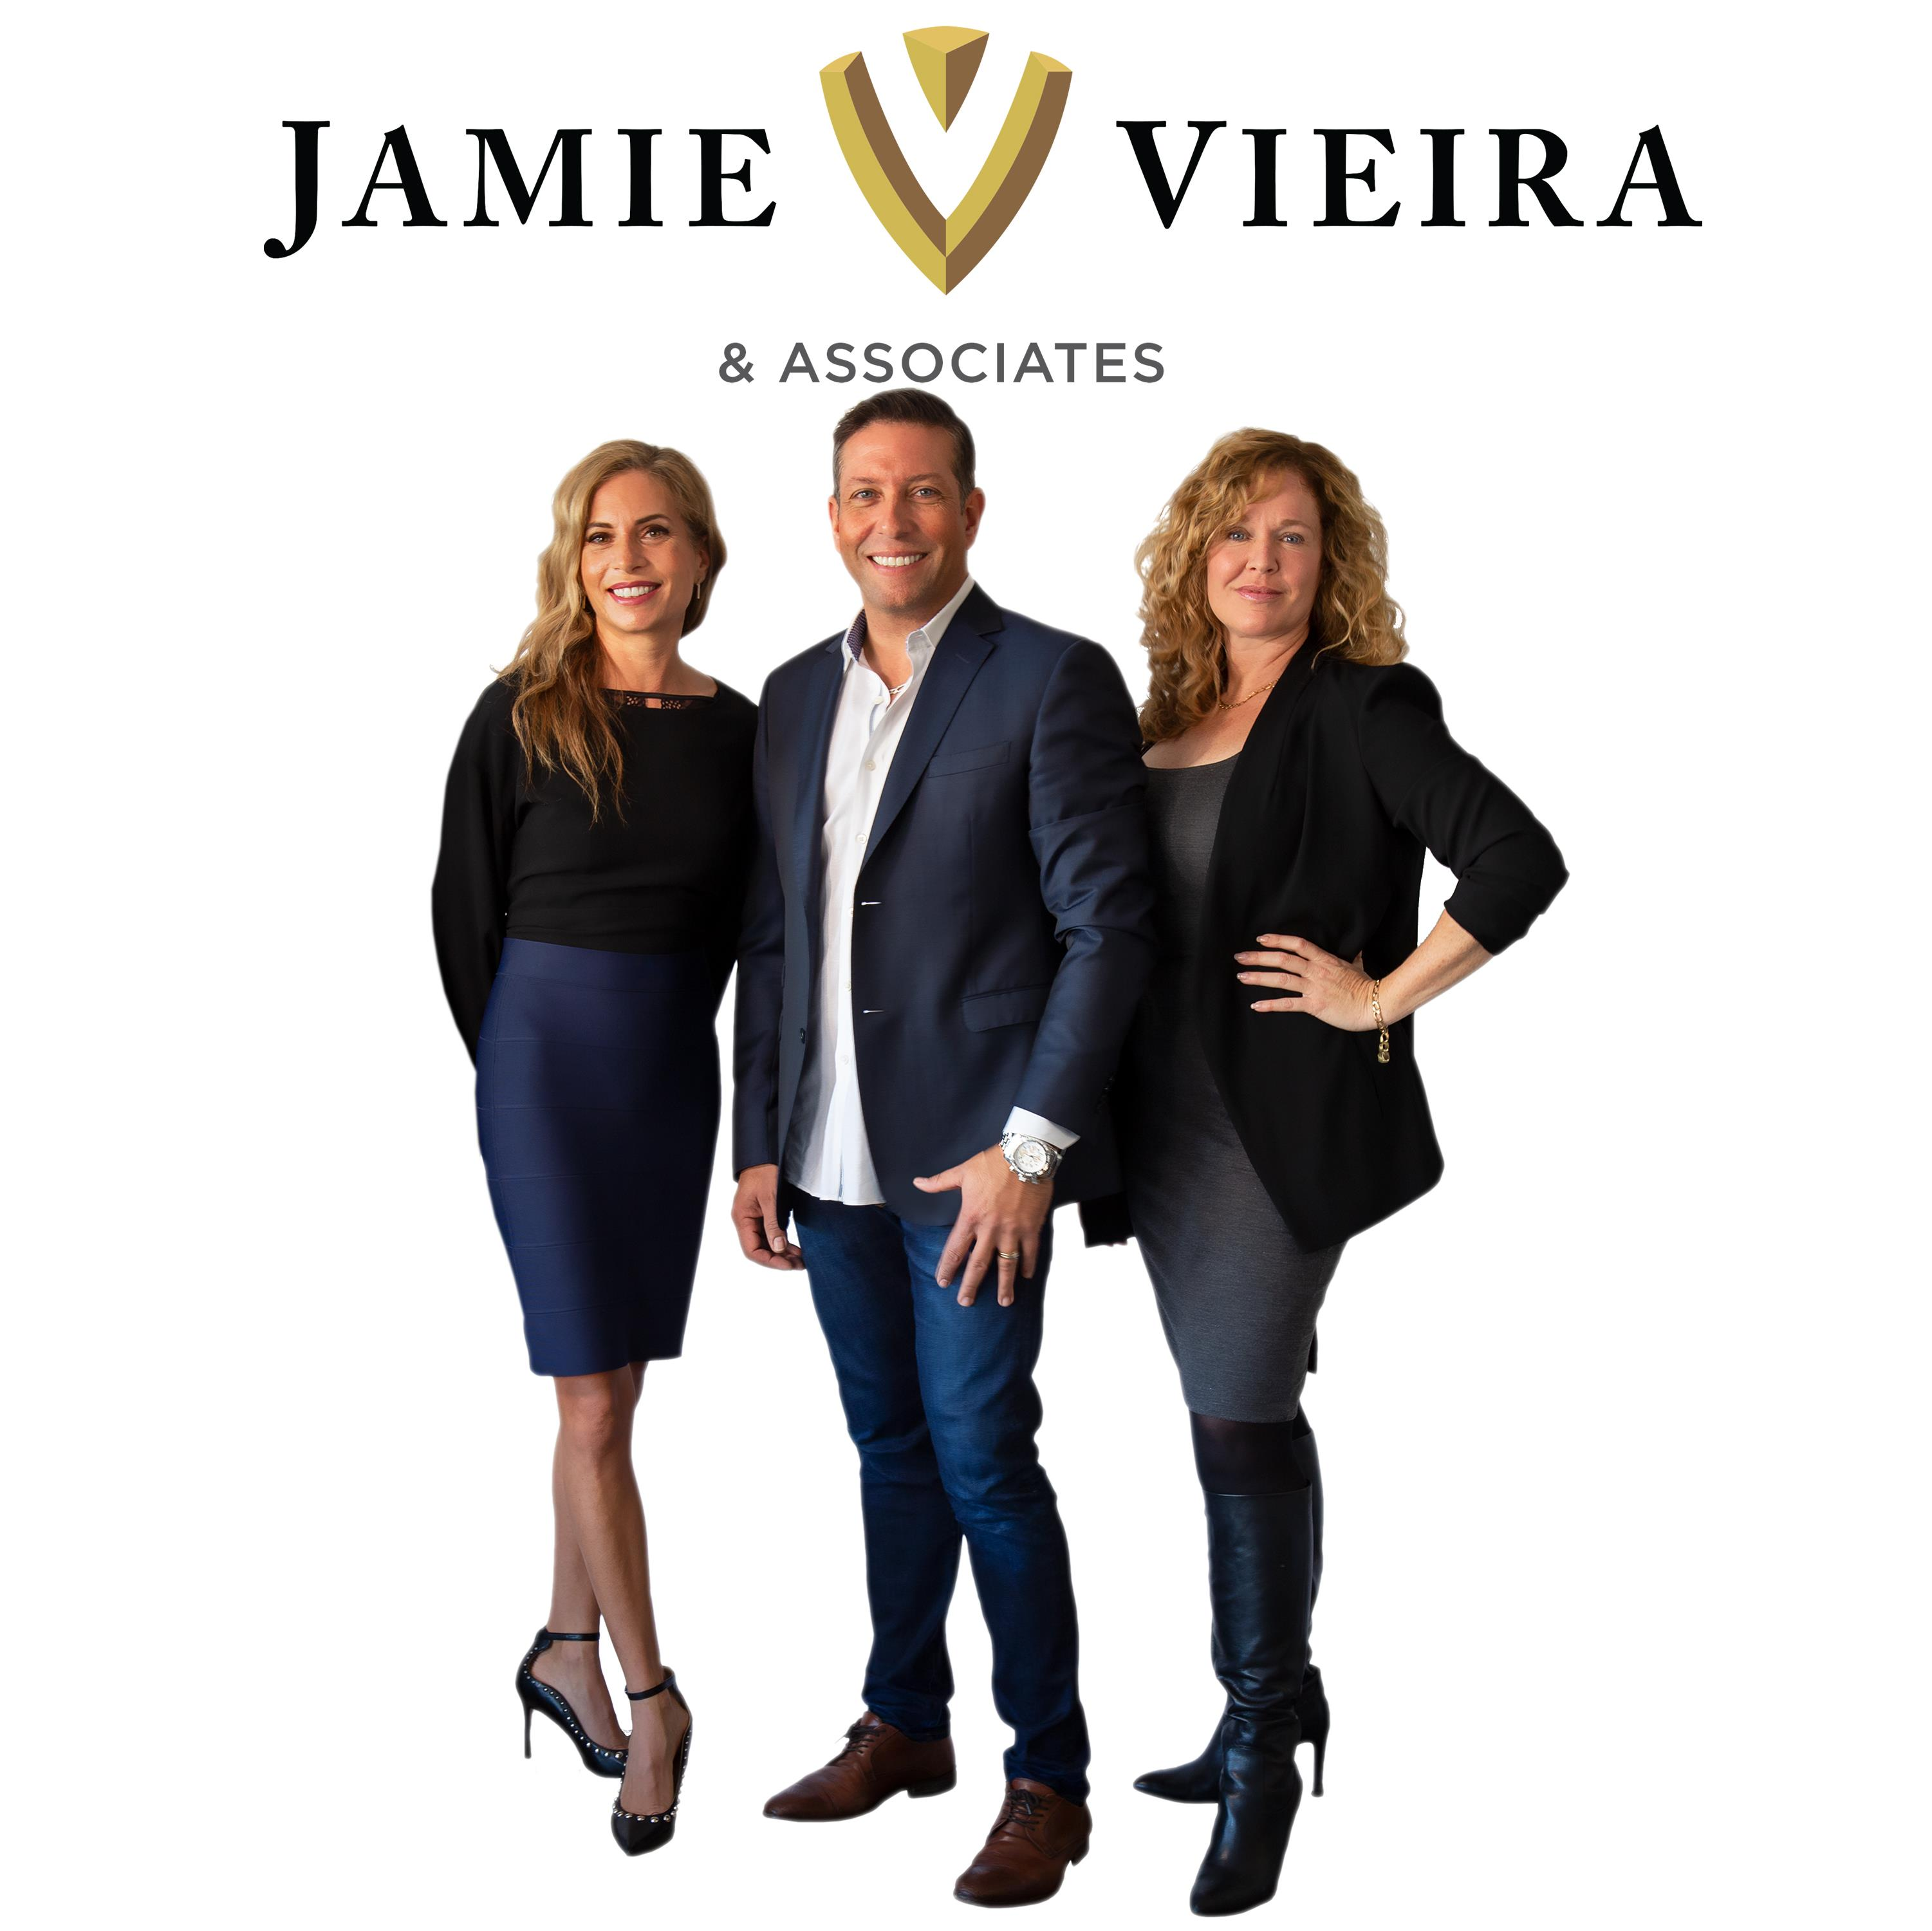 jamie vieira and associates real estate team 2019